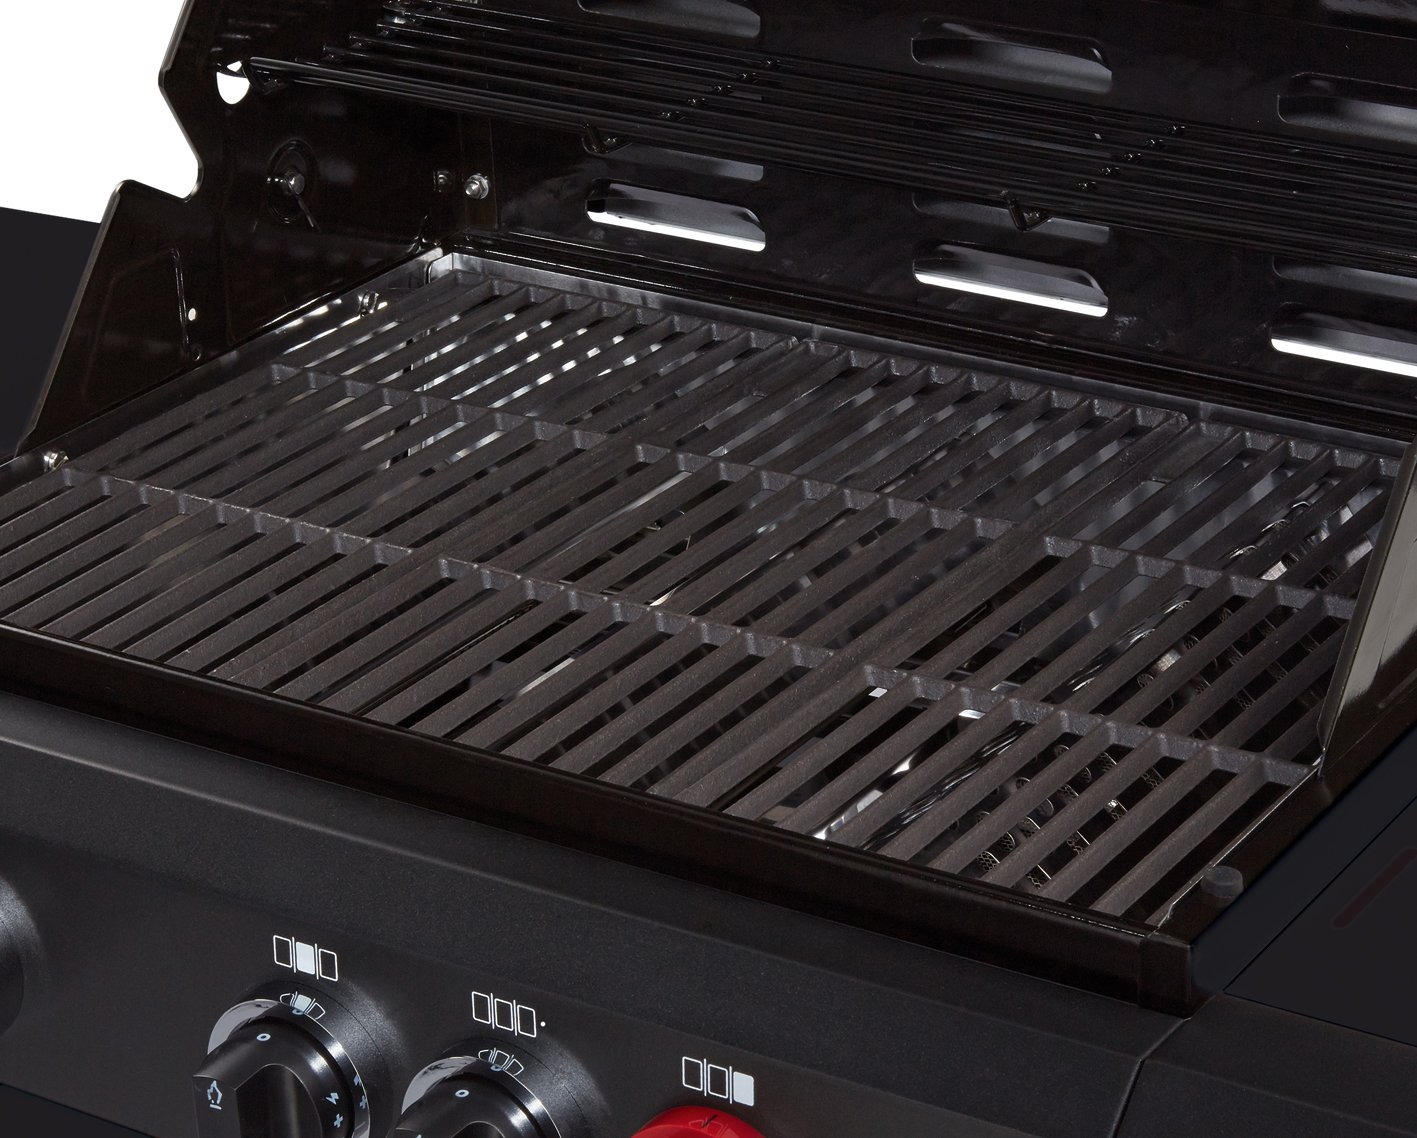 Enders Gasgrill Kansas Pro 3 Sik Turbo : Enders gasgrill kansas black k turbo amazon garten